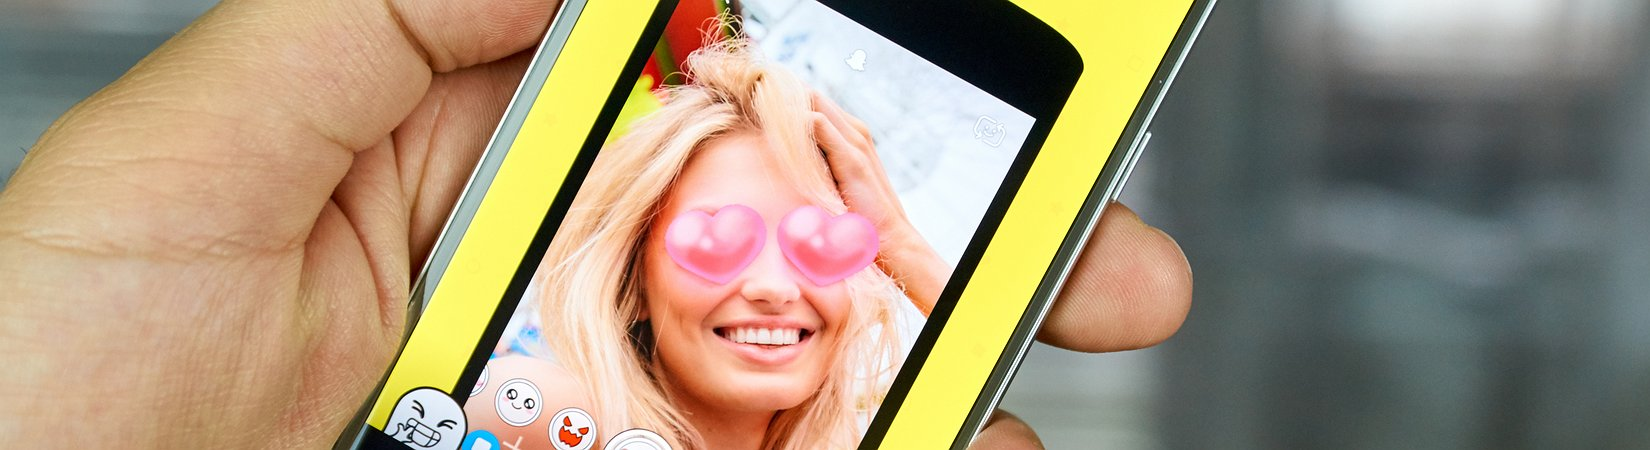 Snapchat secretly files for an IPO due next March